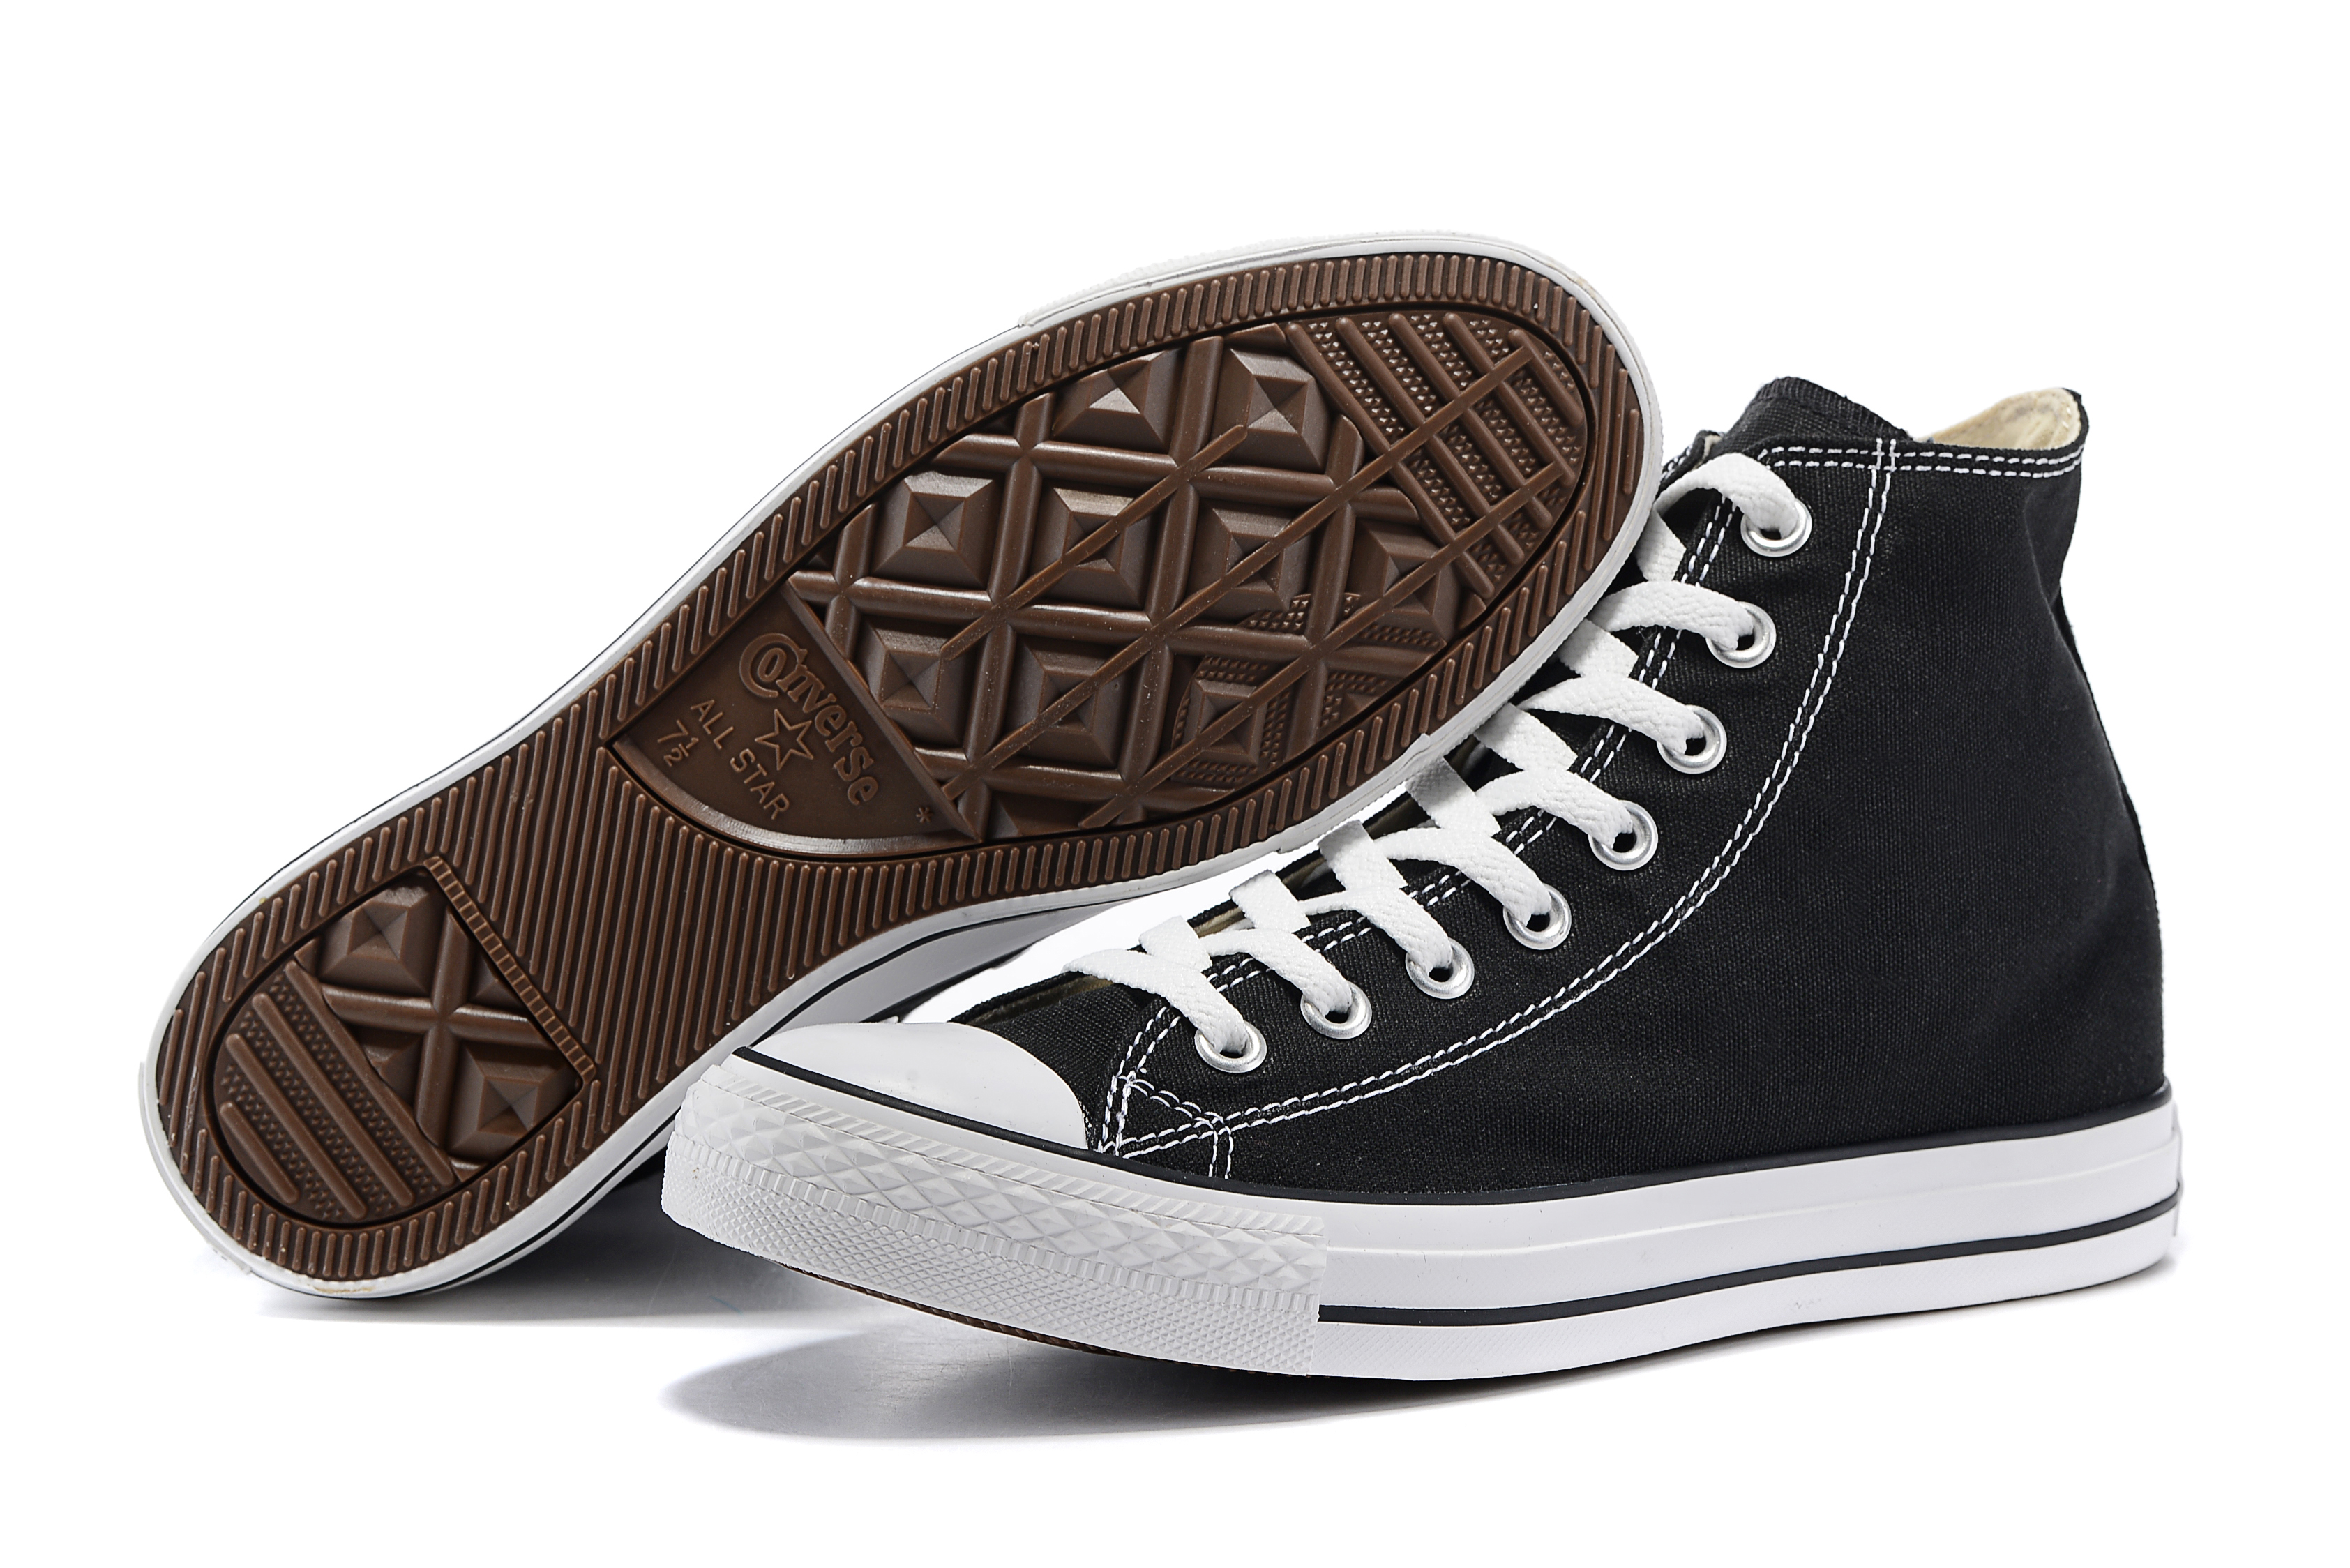 <font><b>Converse</b></font> <font><b>all</b></font> <font><b>star</b></font> canvas <font><b>shoes</b></font> <font><b>man</b></font> and women high classic sneakers Skateboarding <font><b>Shoes</b></font> 7 color image